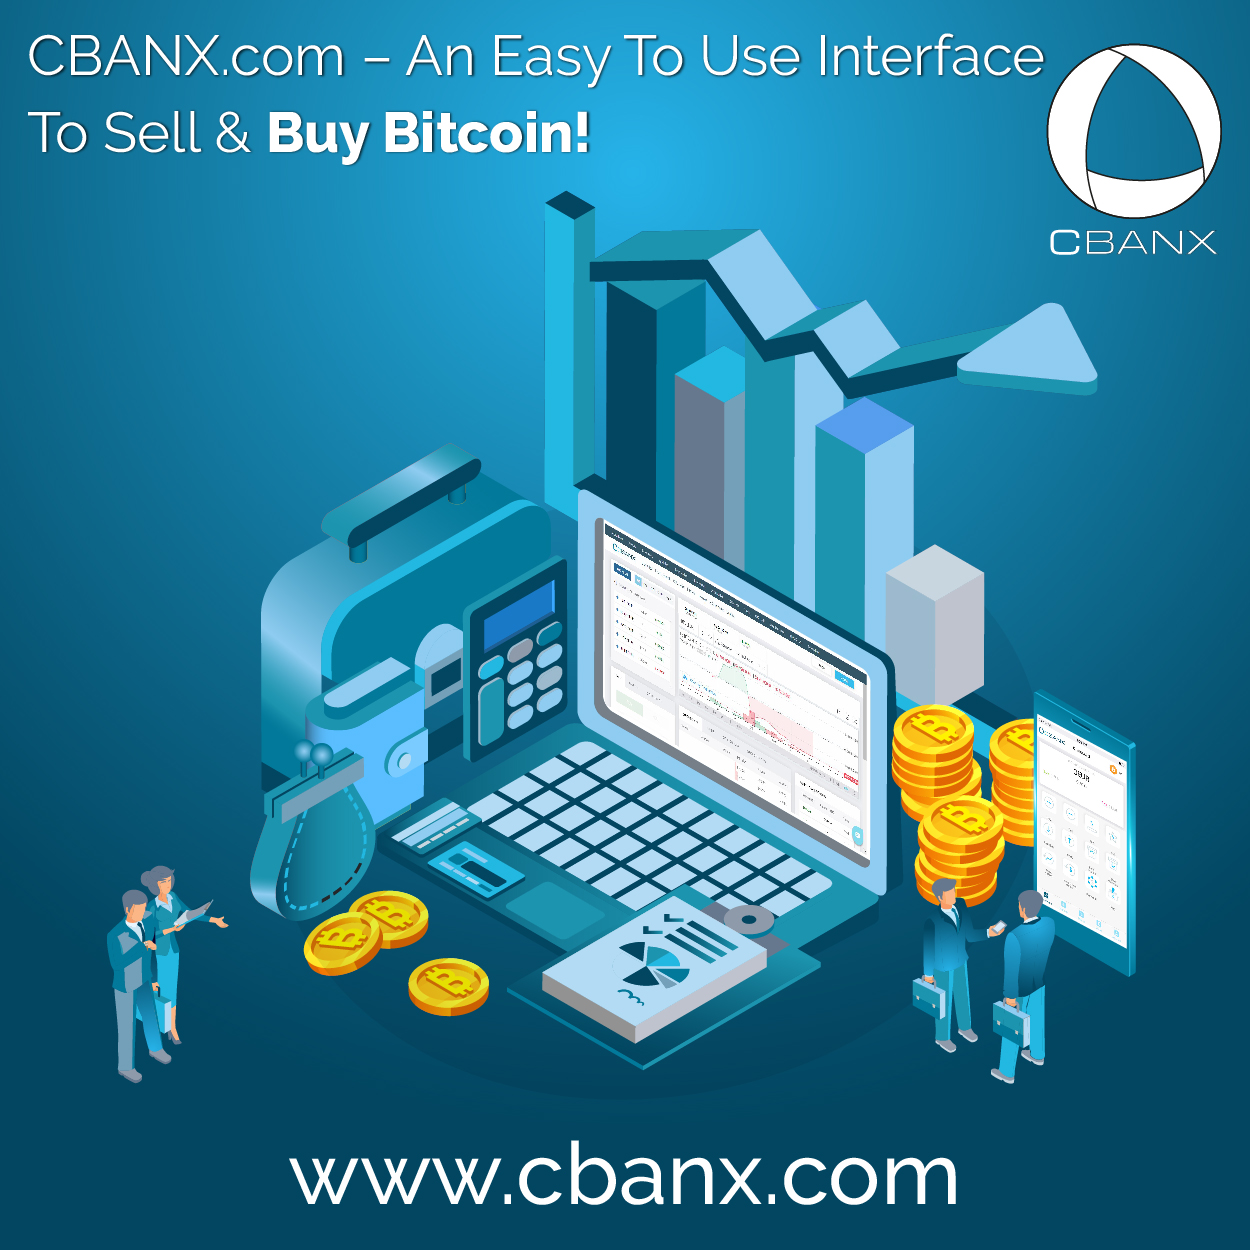 CBANX.com – An Easy To Use Interface To Sell & Buy Bitcoin!